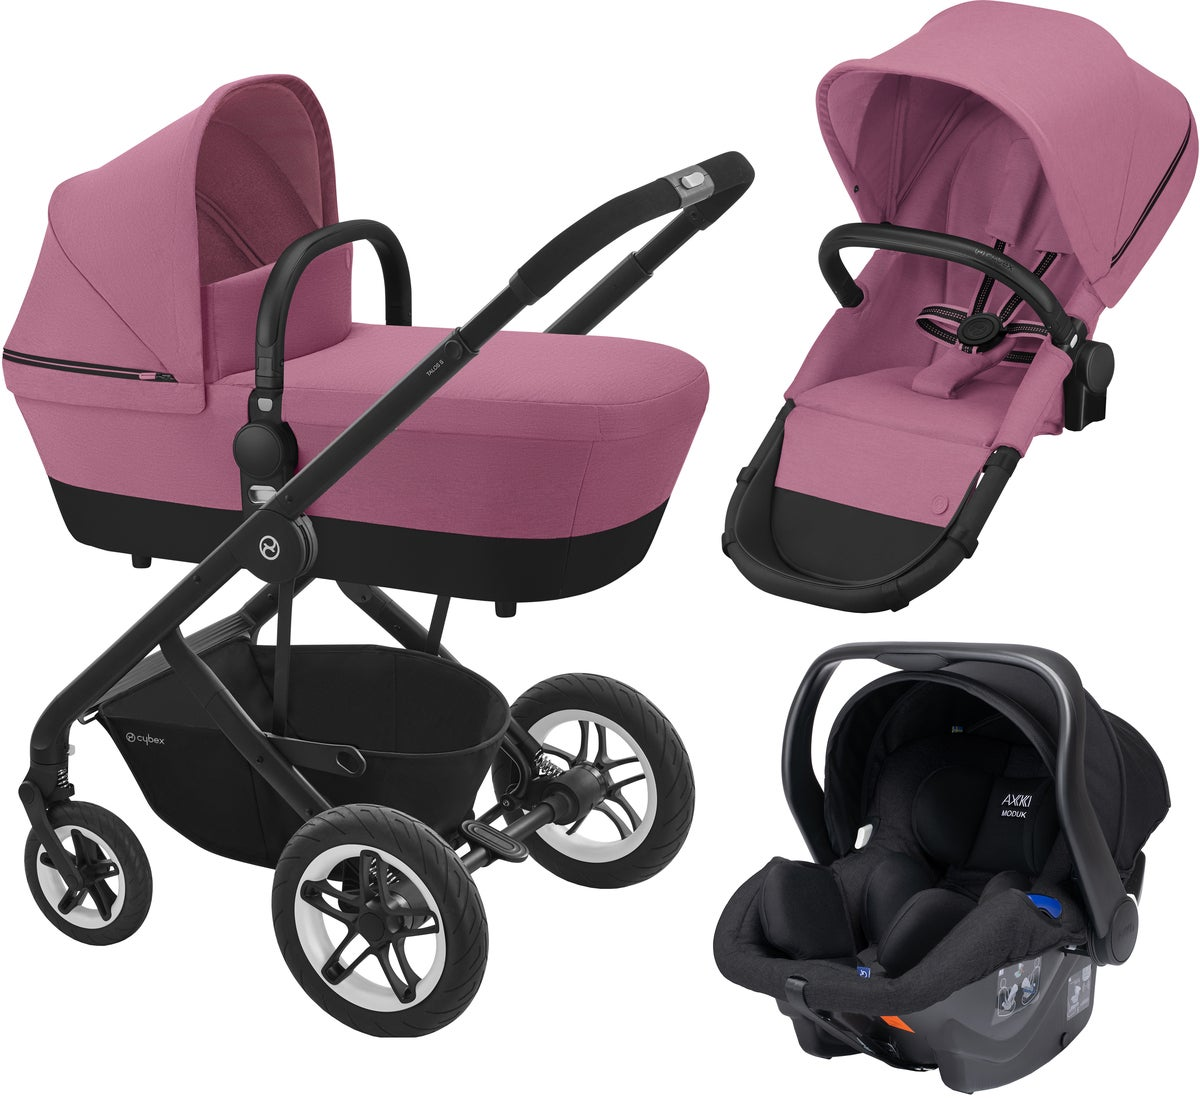 Cybex Talos S 2-in-1 Duovagn inkl. Axkid Modukid Babyskydd, Magnolia Pink